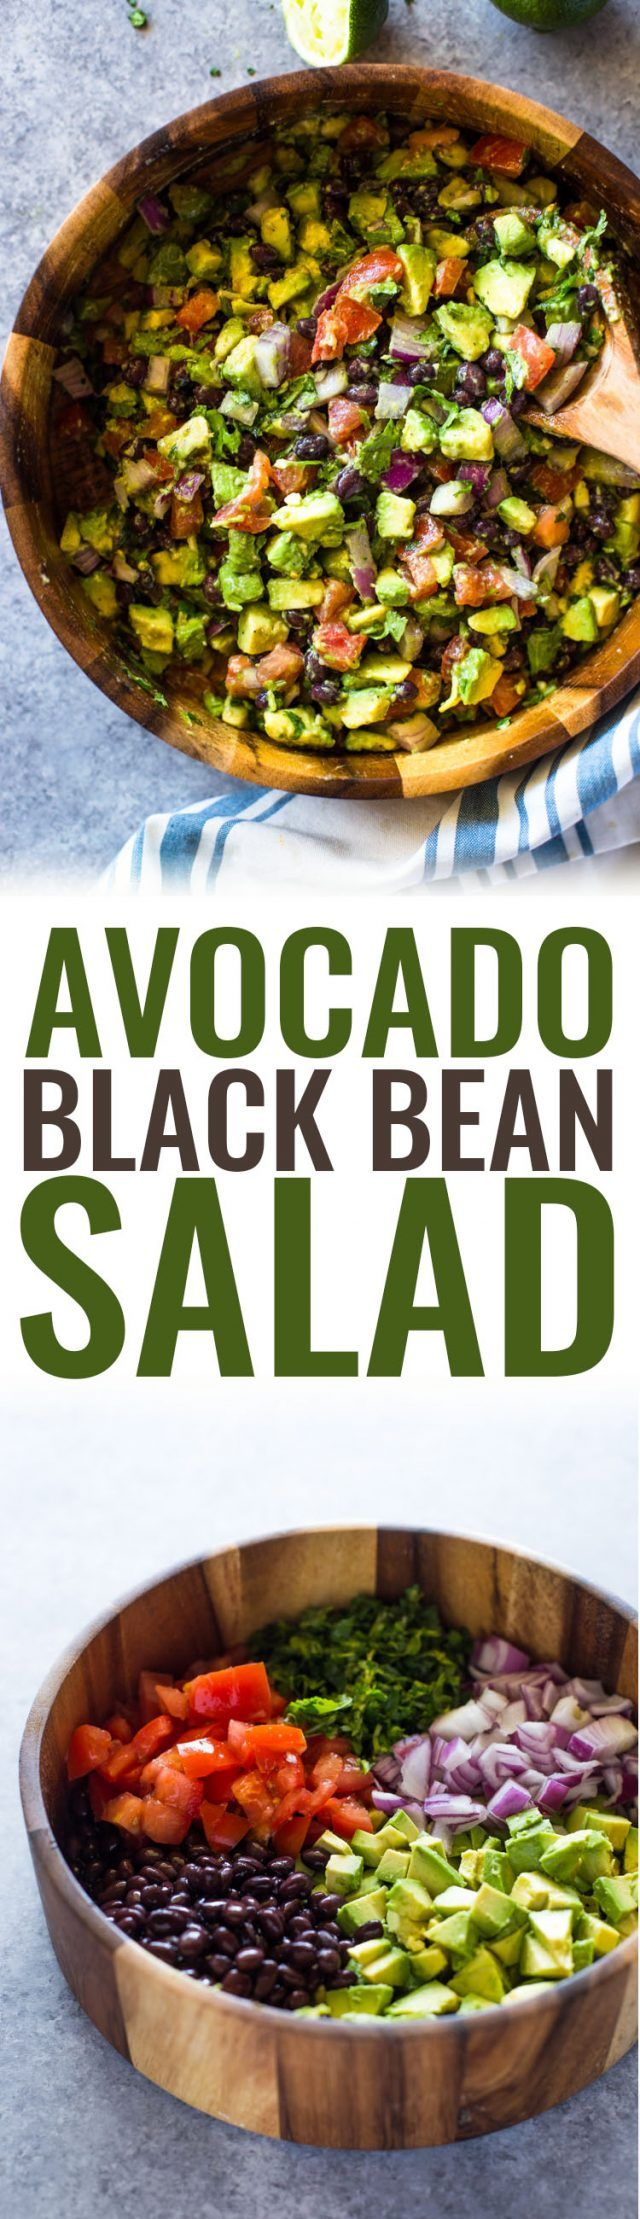 Avocado & Black Bean Salad | Gimme Delicious